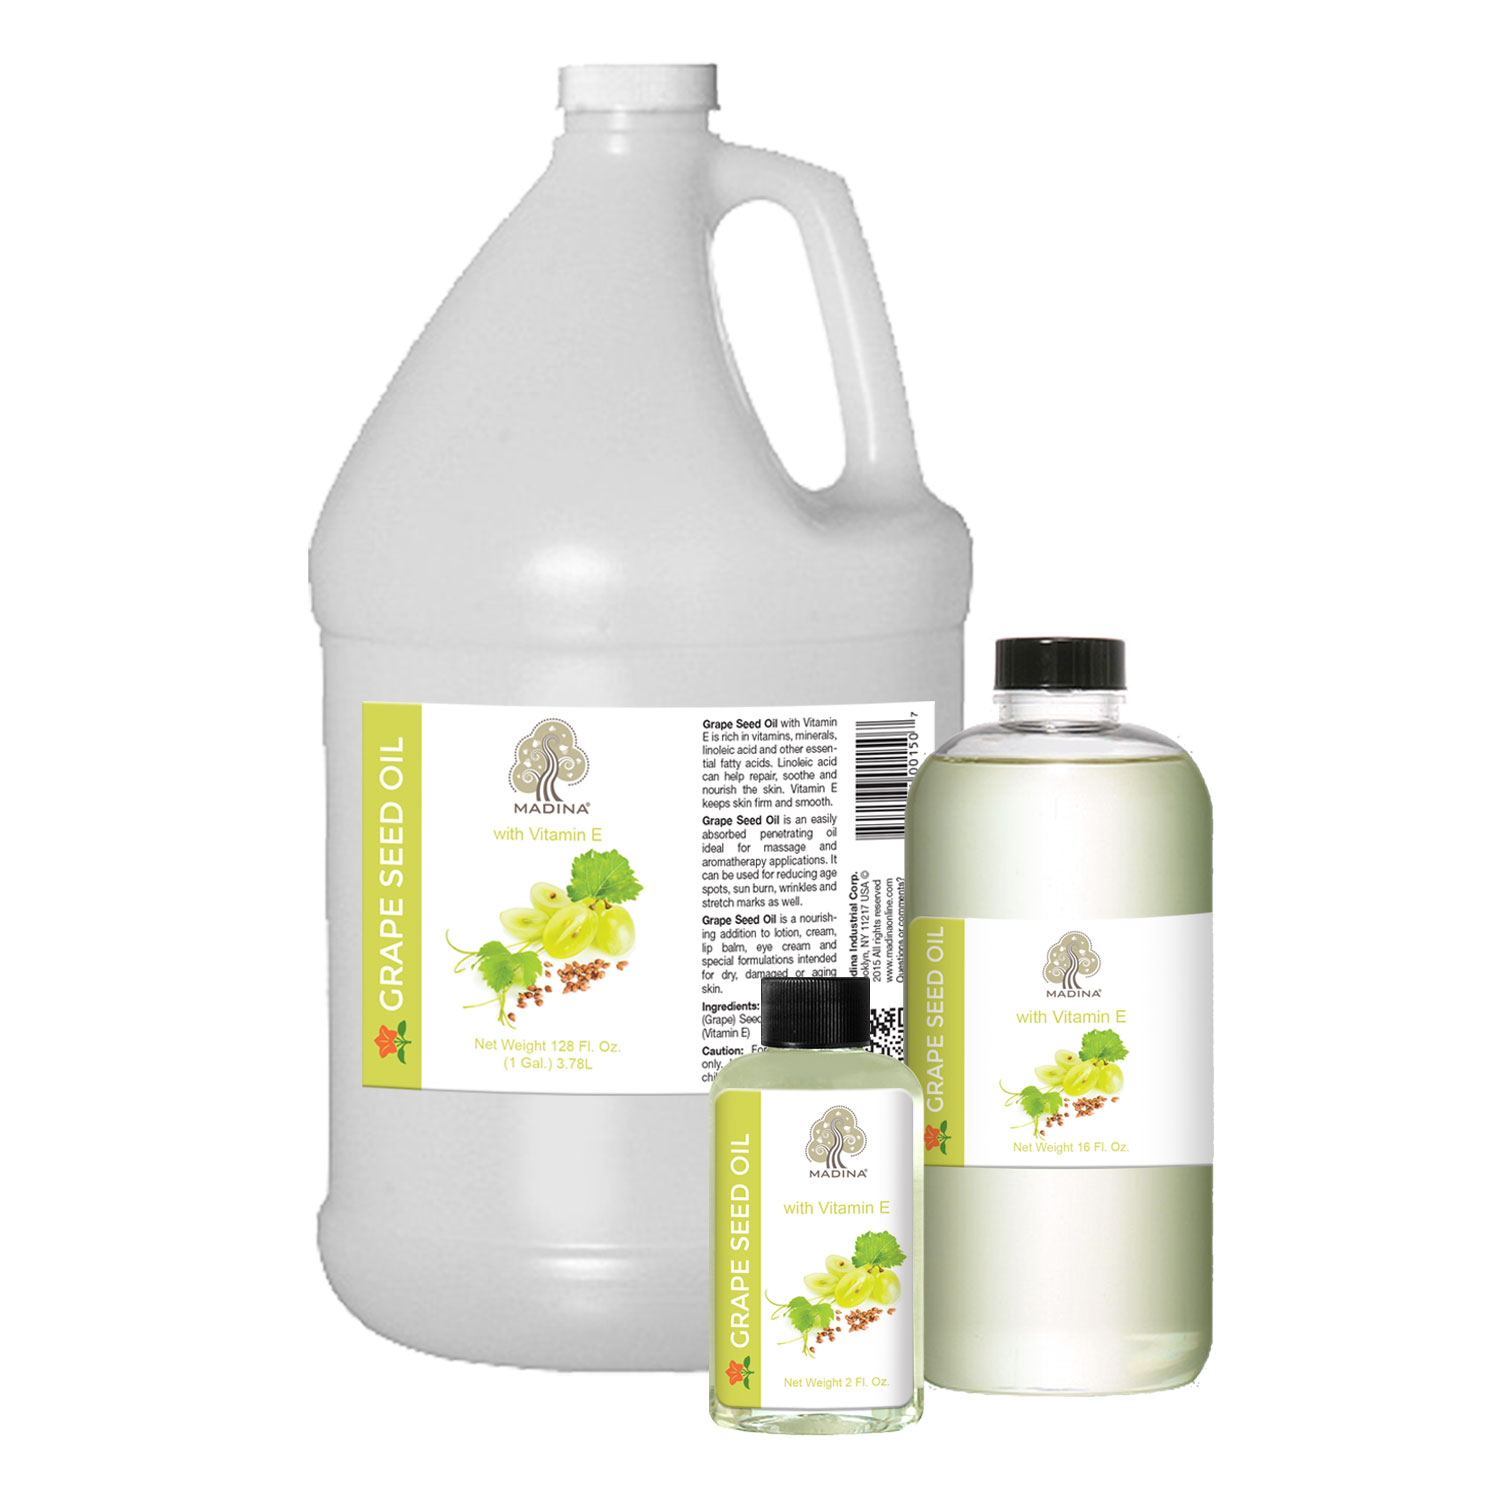 GRAPESEED OIL WITH VITAMIN E - 1 lb